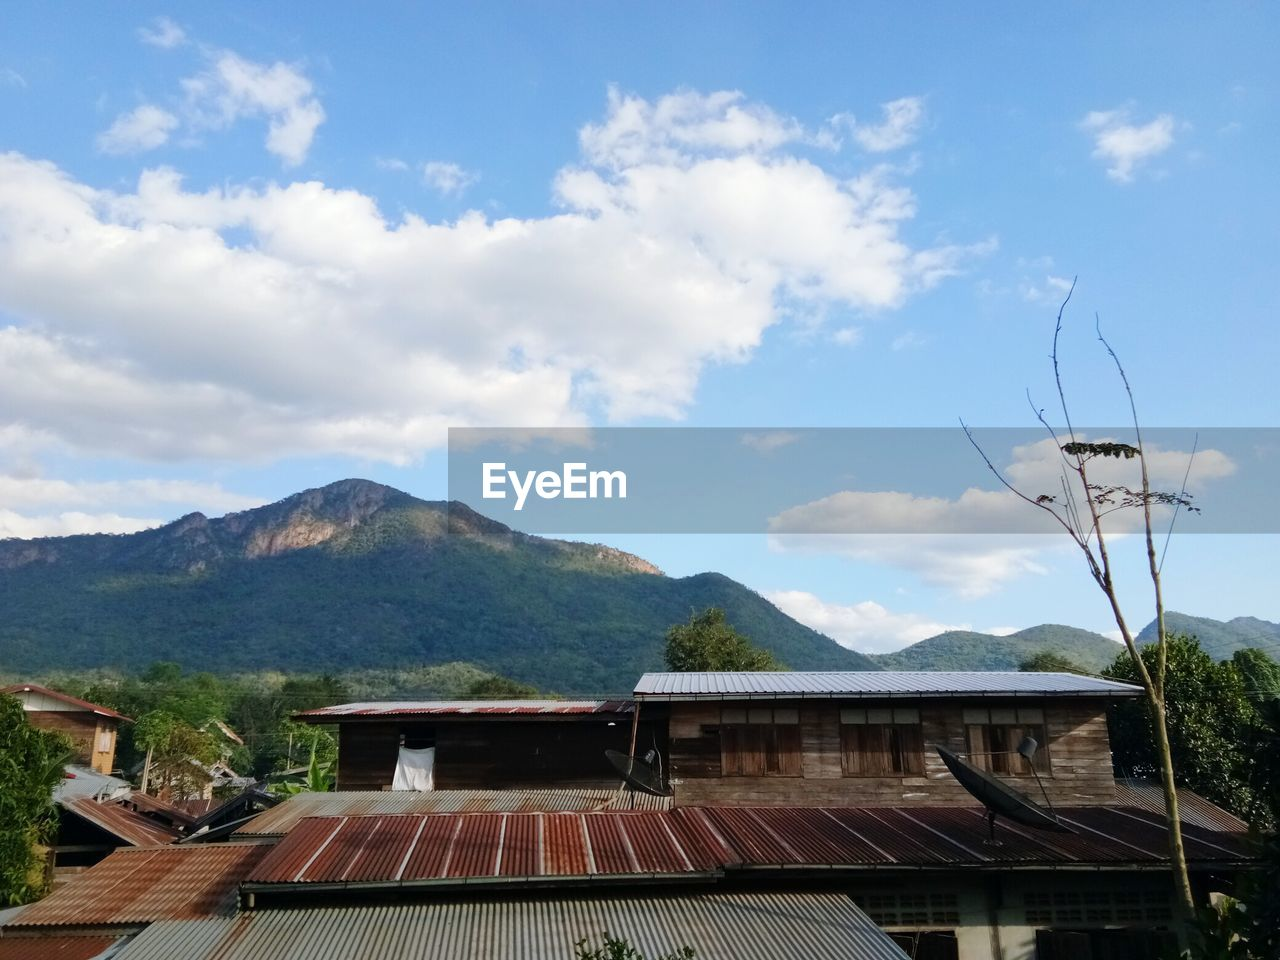 mountain, roof, sky, no people, architecture, day, nature, outdoors, tiled roof